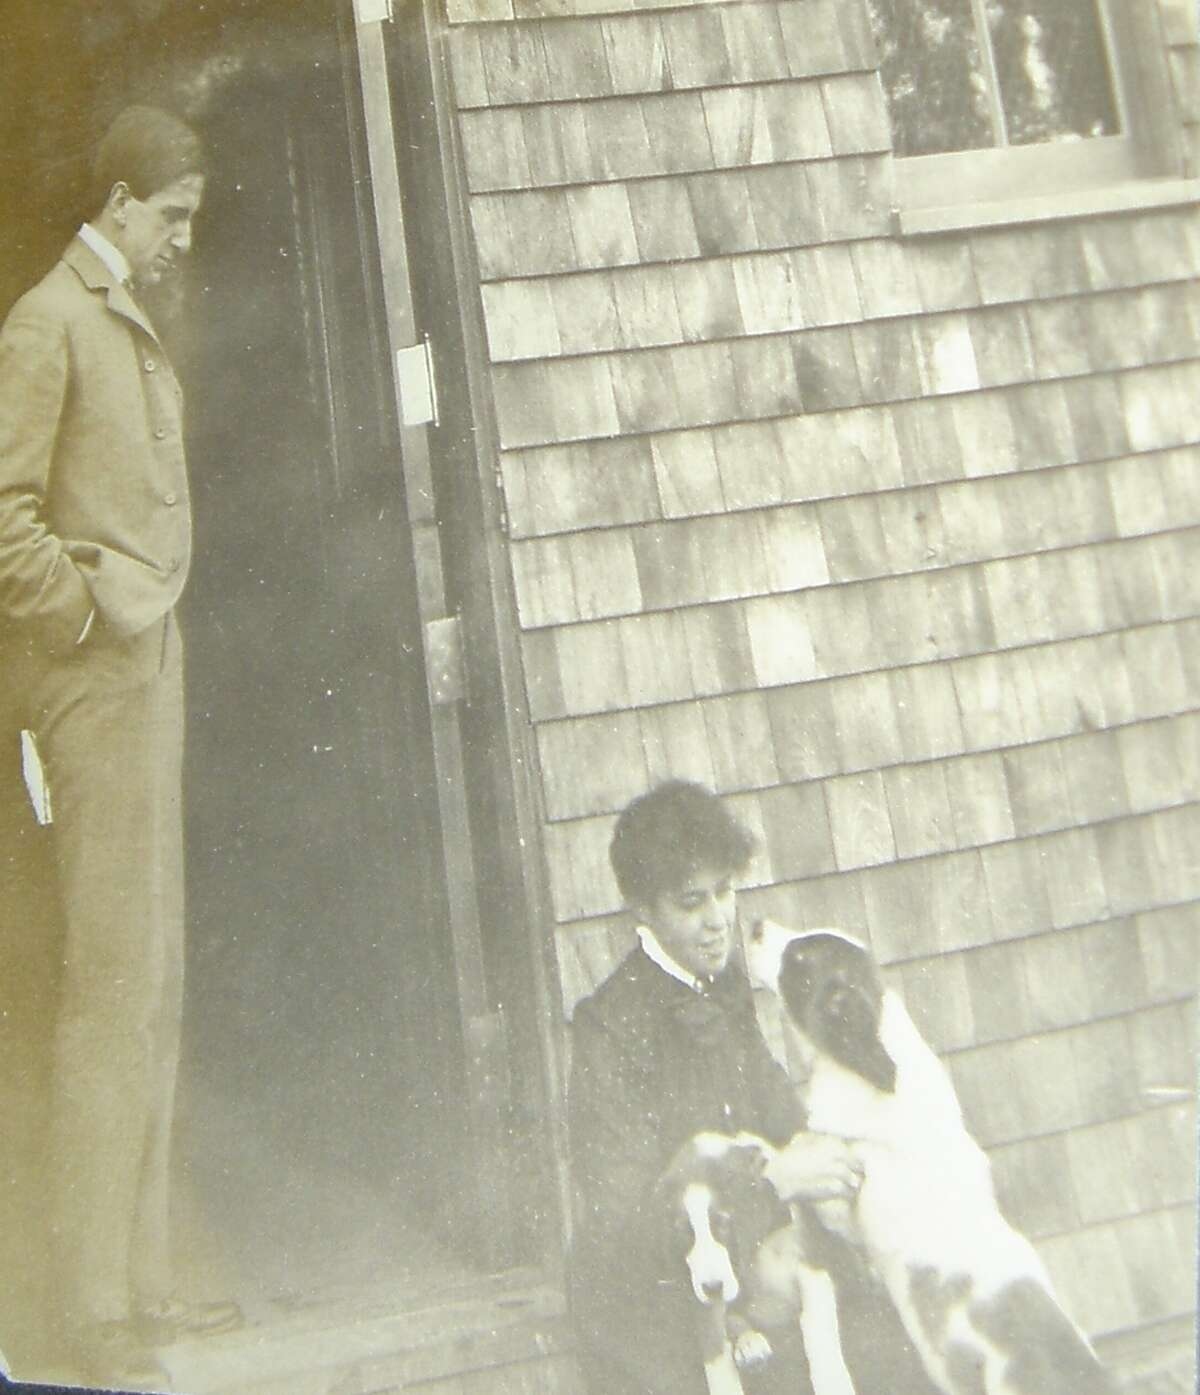 Following Jay Gould's death in 1892 of tuberculosis, his eldest daughter Helen took over management of Lyndhurst. At the request of the youngest Gould, Frank, she added a kennel for St. Bernards on the property, not to breed them for sale, but to show them. Frank is pictured here outside of the kennel with a staff member.